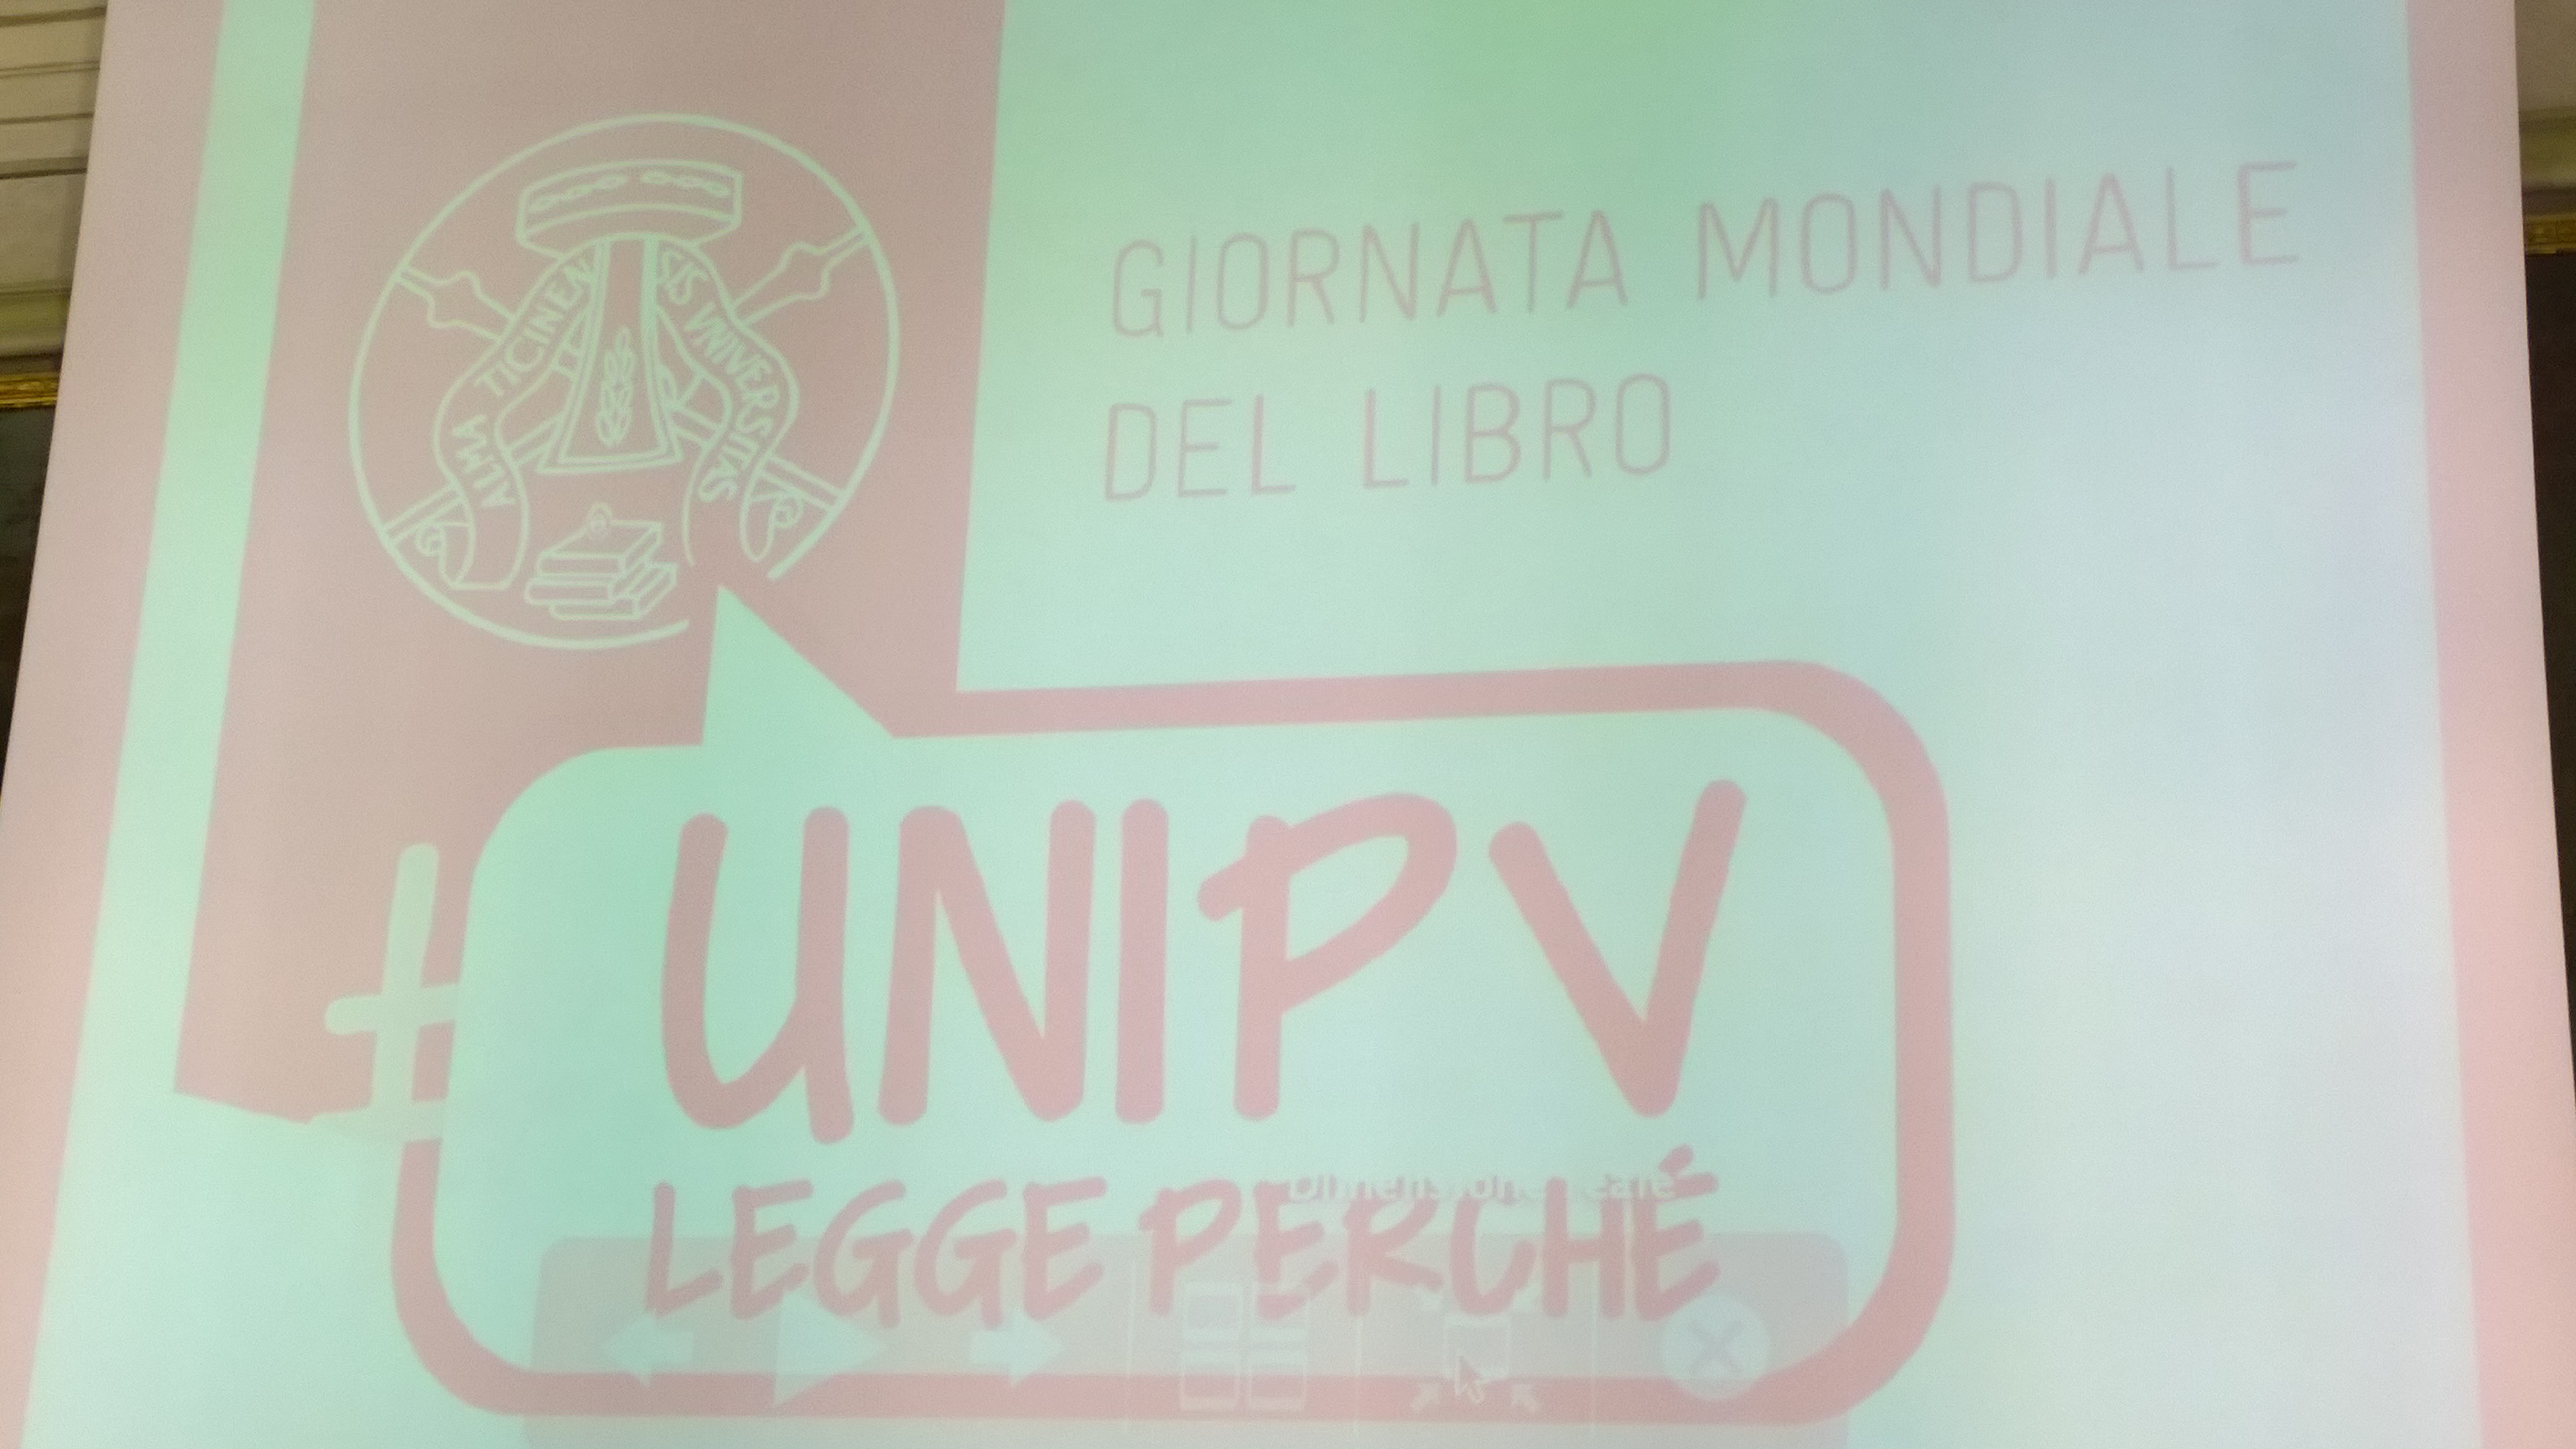 La Giornata Mondiale del Libro all'Università di Pavia (video)